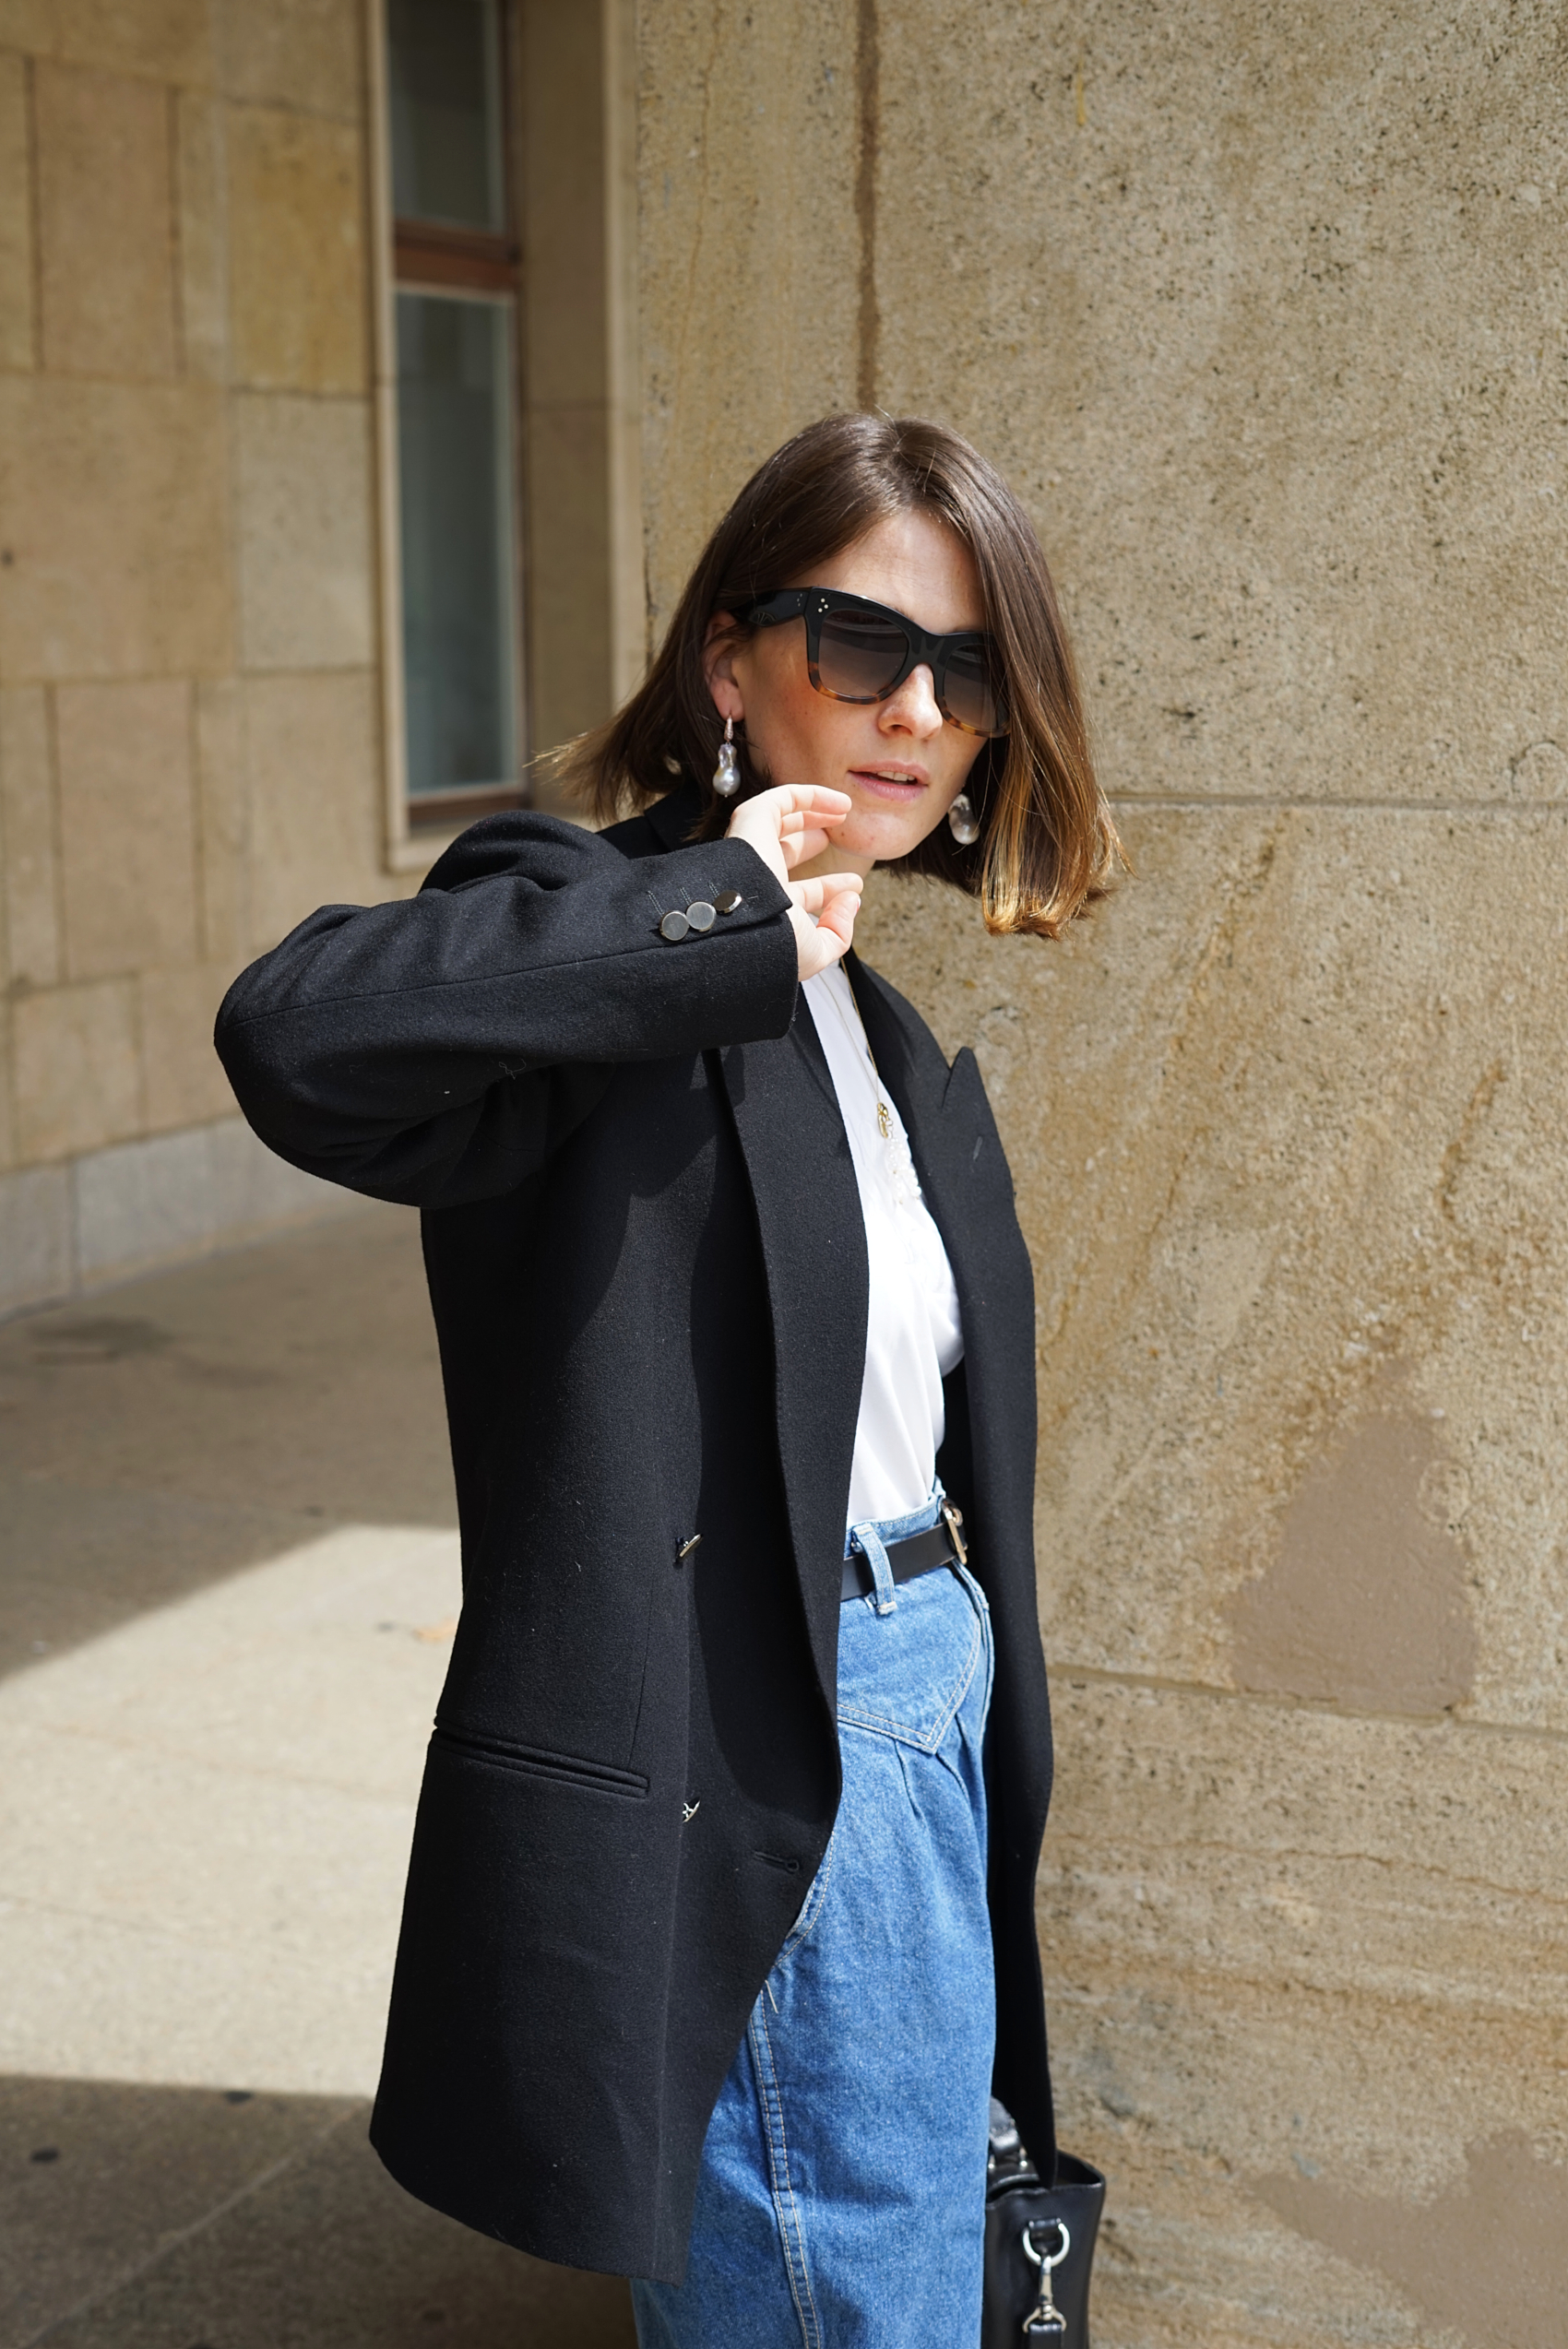 Black Classic Blazer - Why you absolutely should own a classic black blazer…